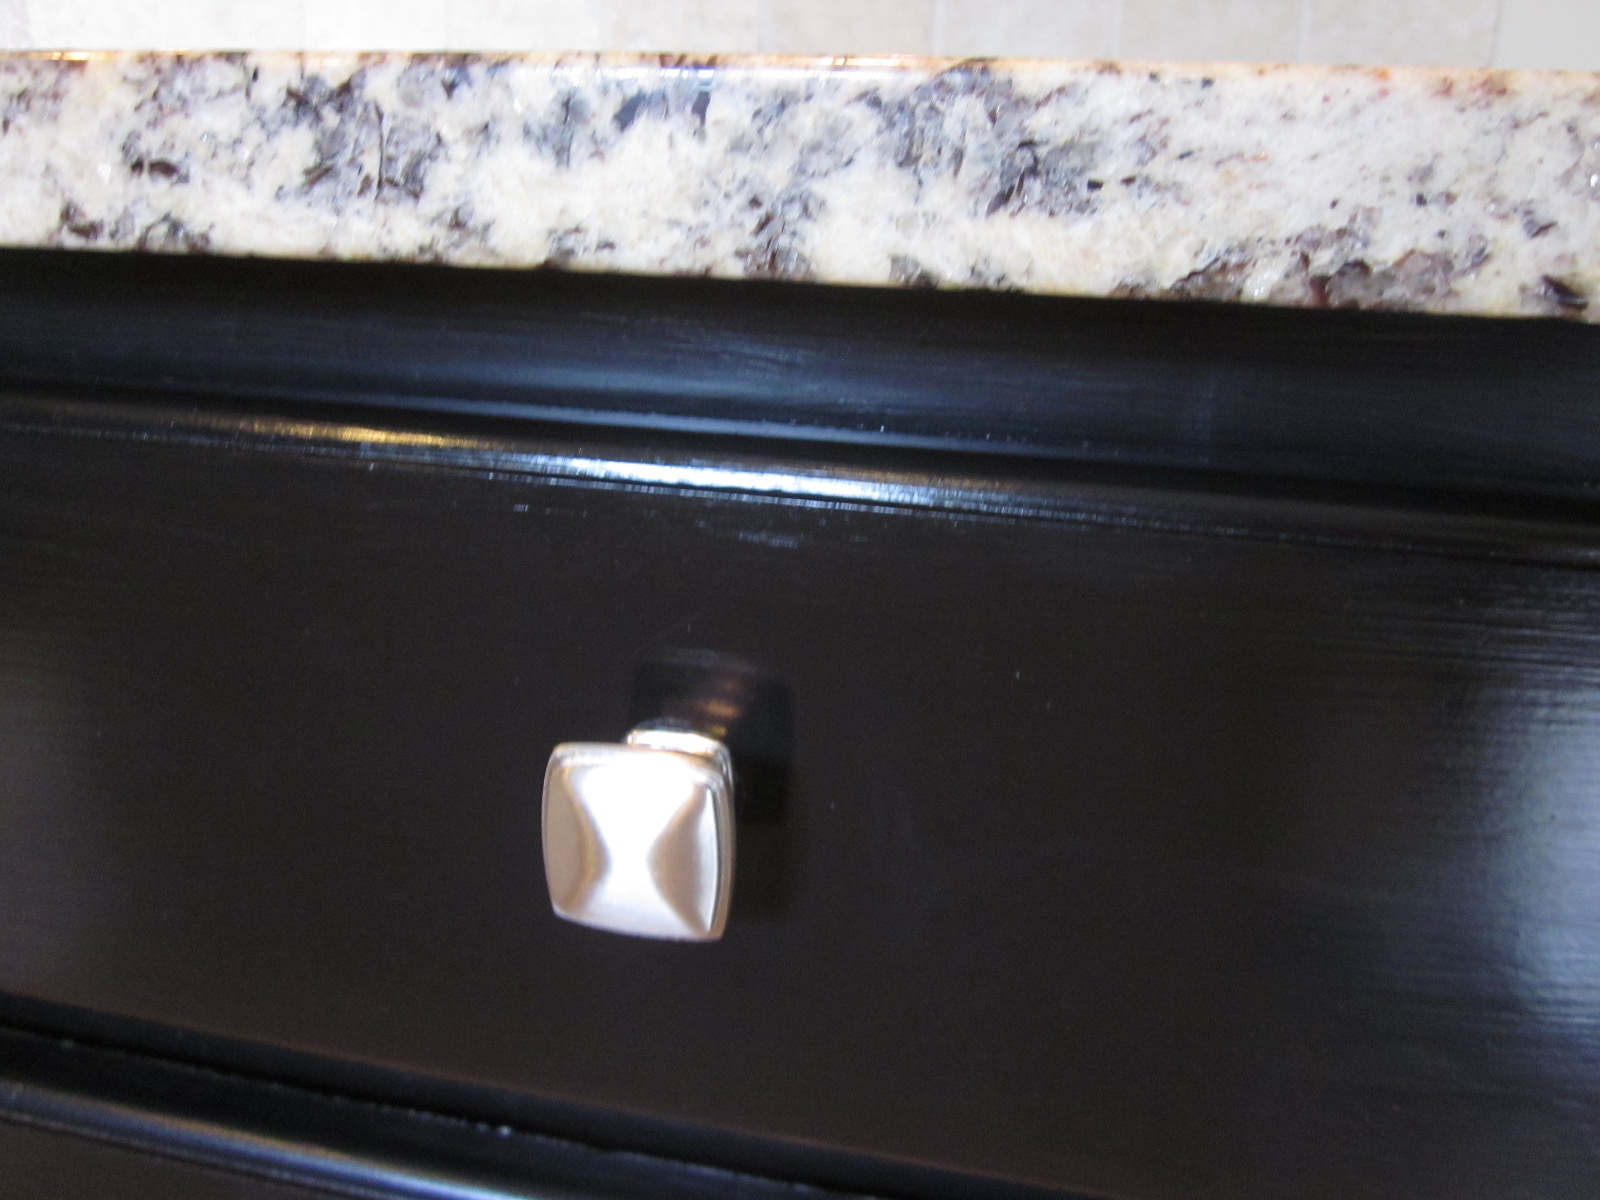 love our new faucet. It is a Delta Trinsic faucet. Here's a closer